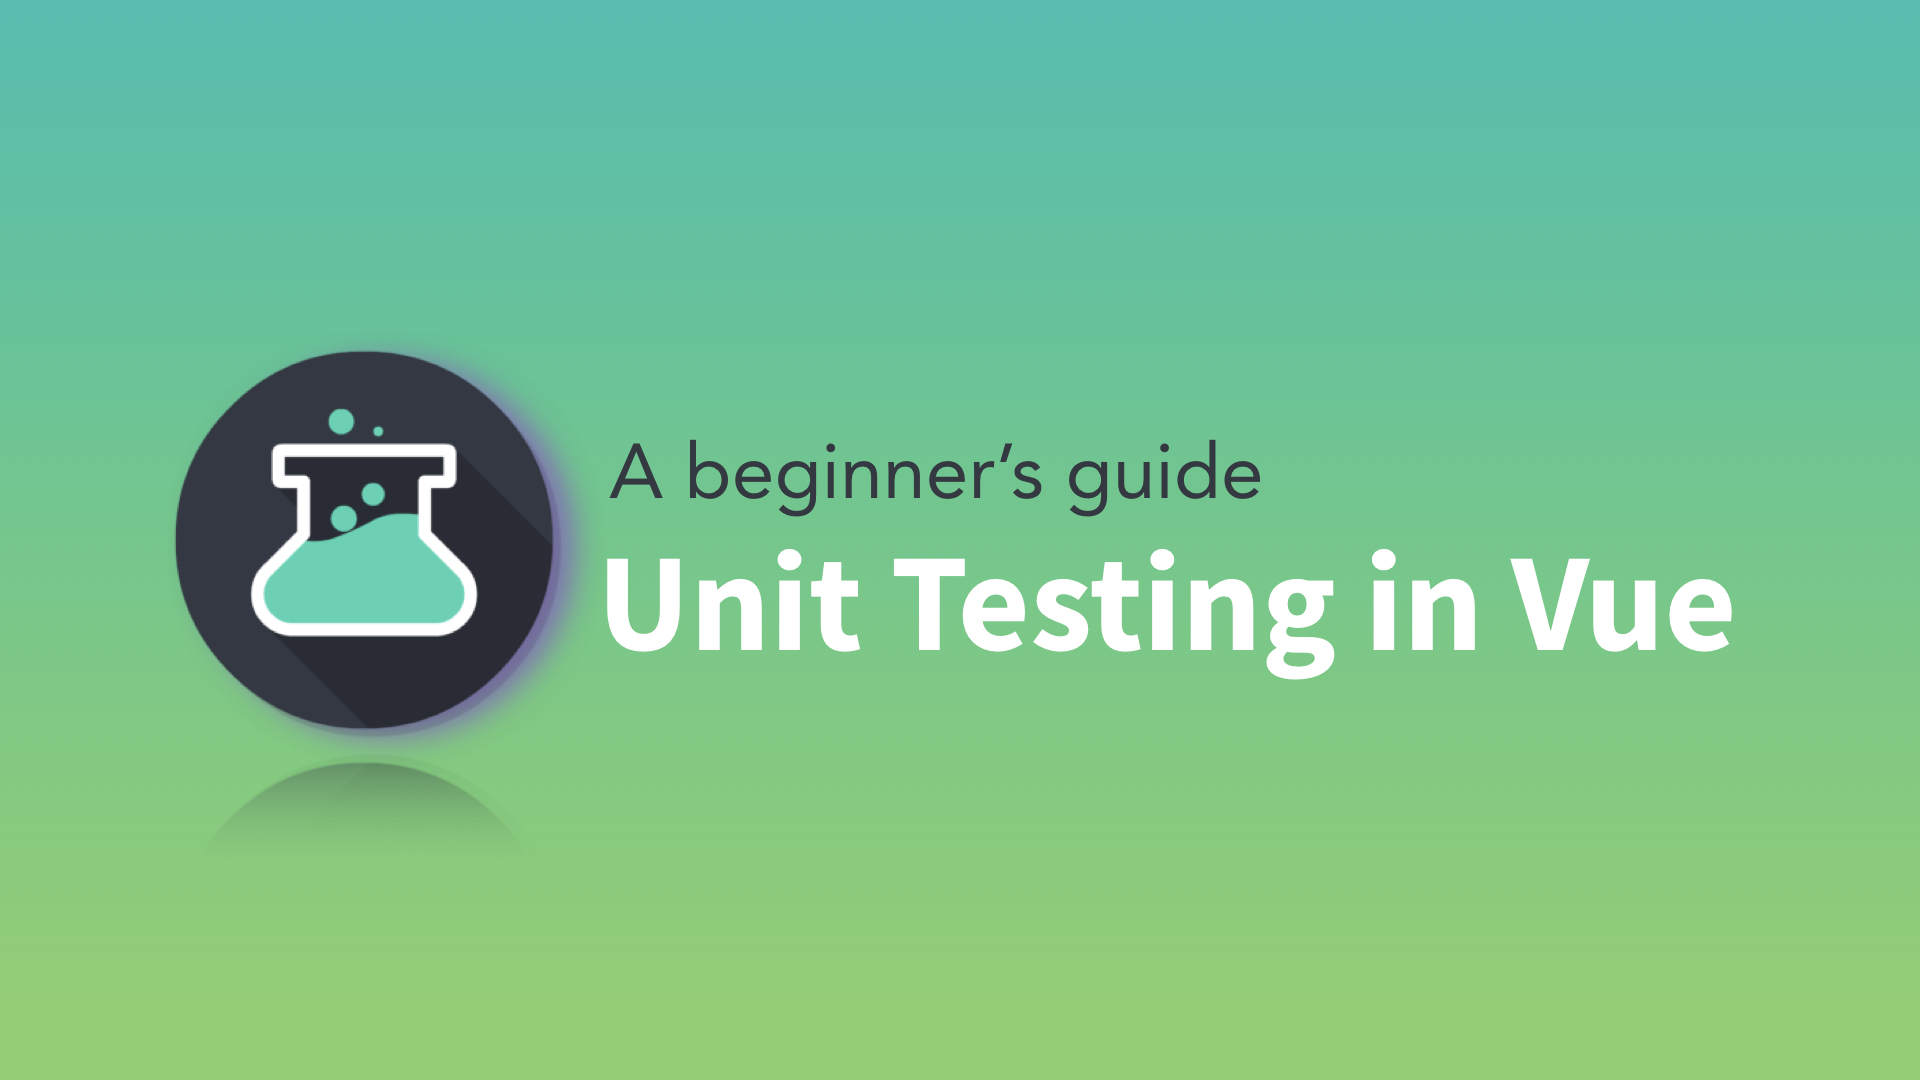 Unit Testing in Vue: What to Test?